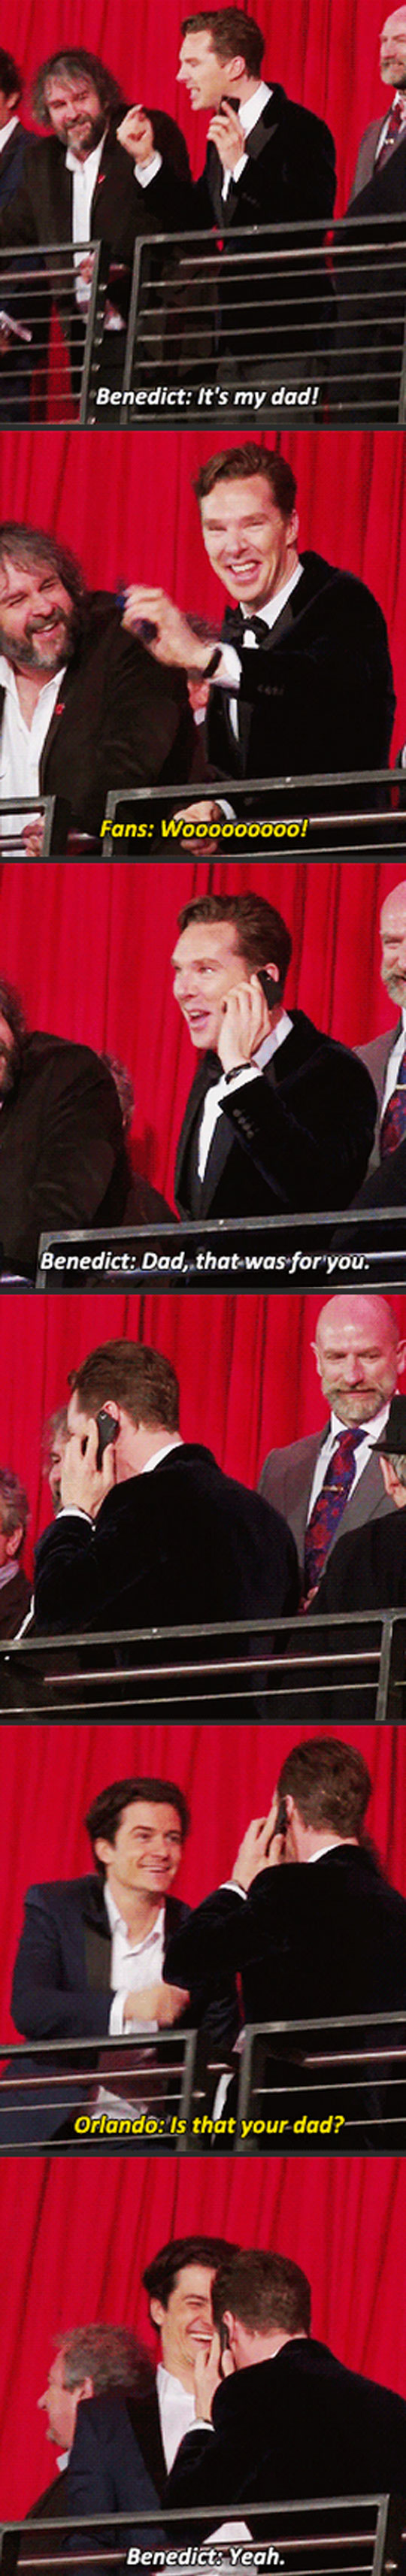 Bennedict and his dad